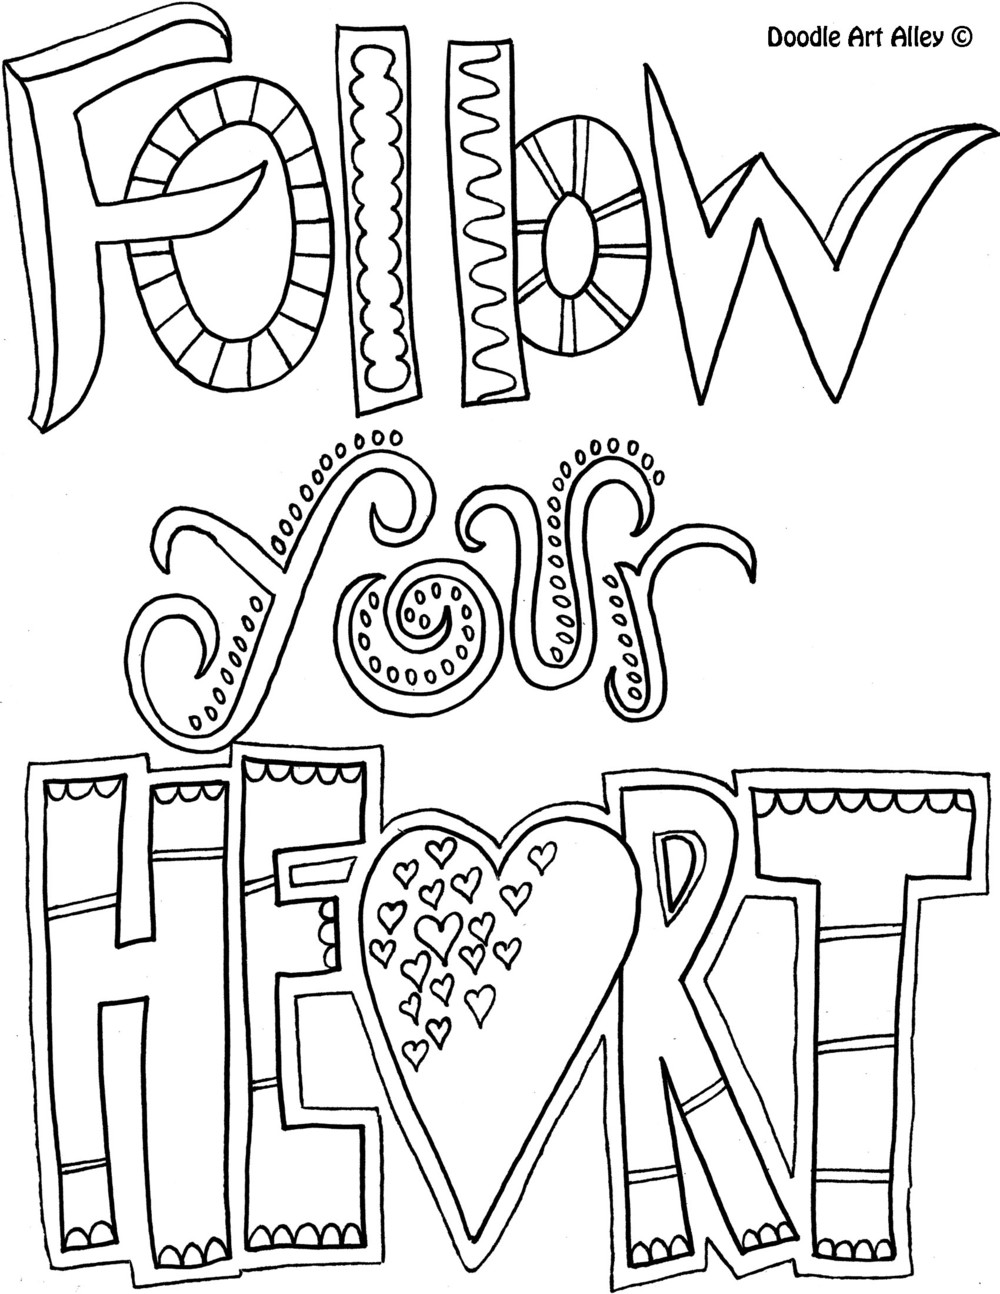 Become a Coloring-book Enthusiast with Doodle Art Alley ... | free printable coloring pages inspirational quotes